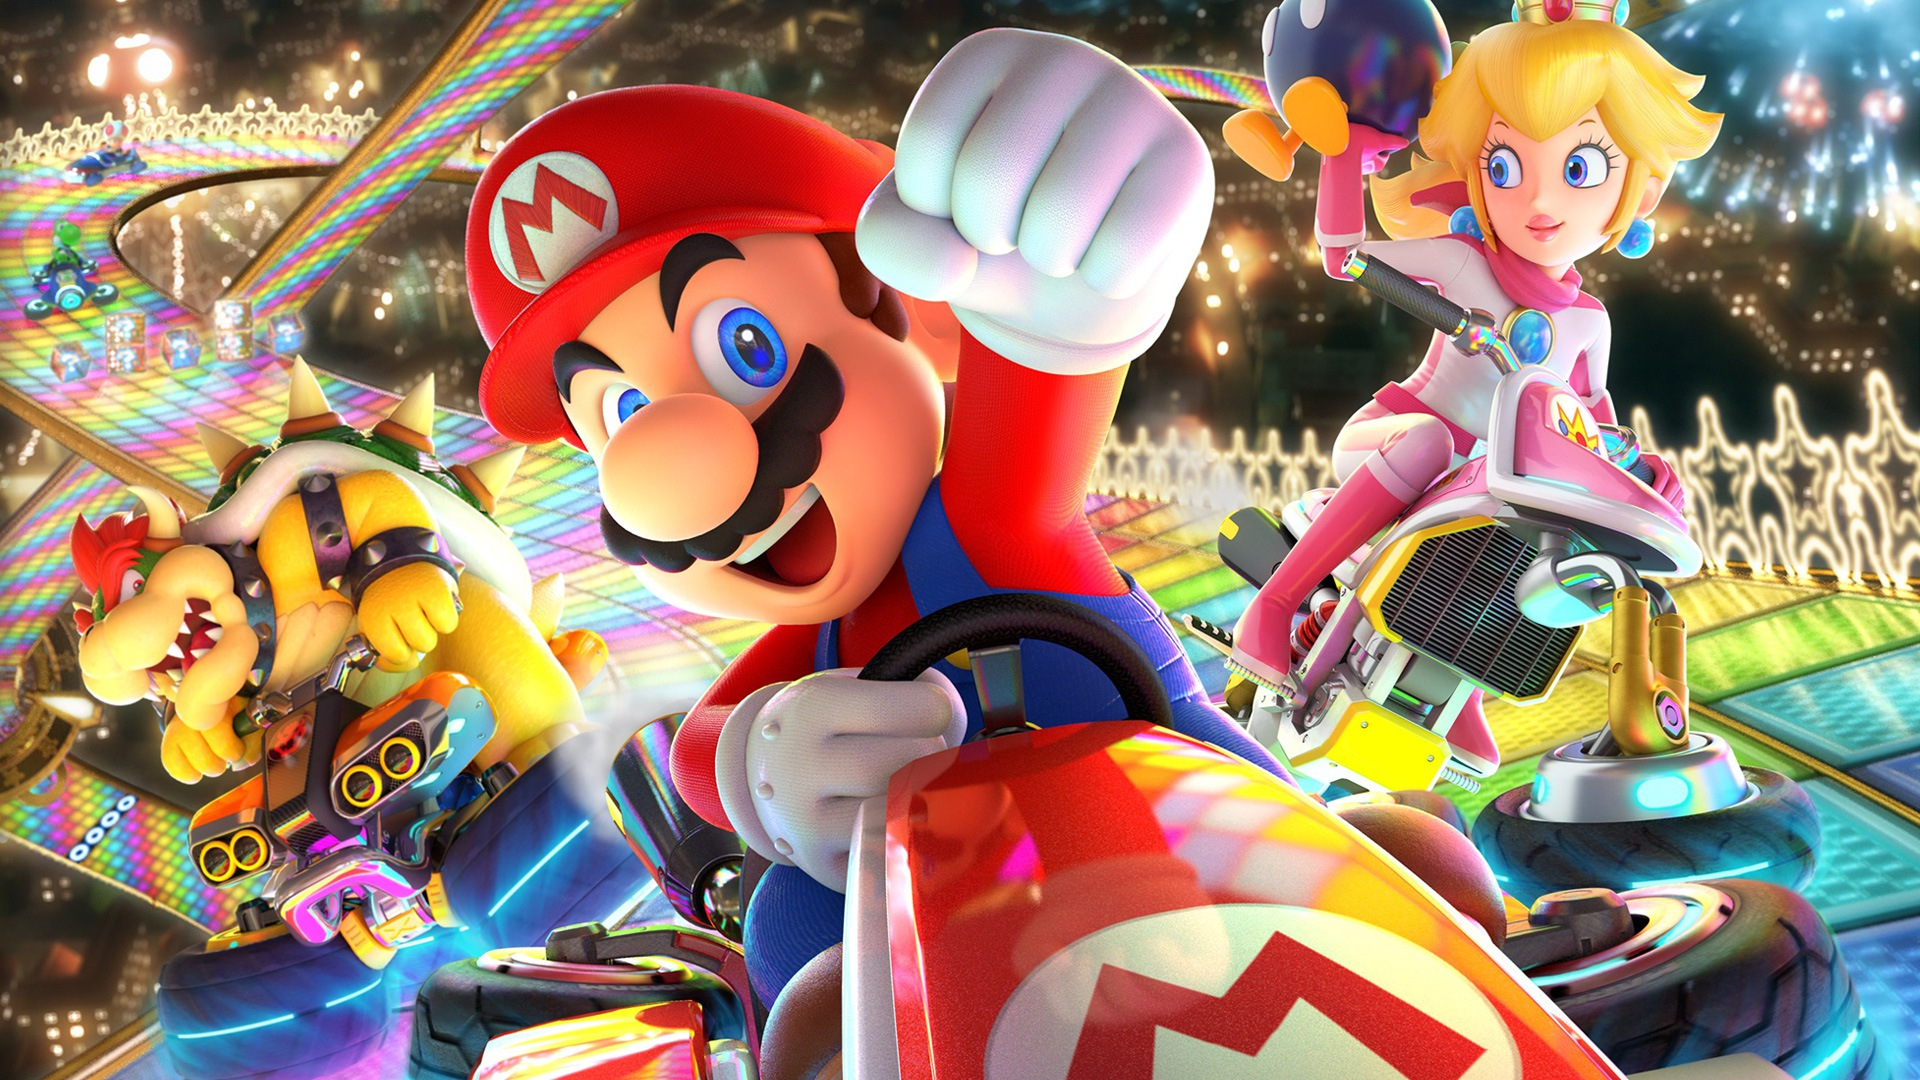 Mario Kart 8 Deluxe fends off Prey